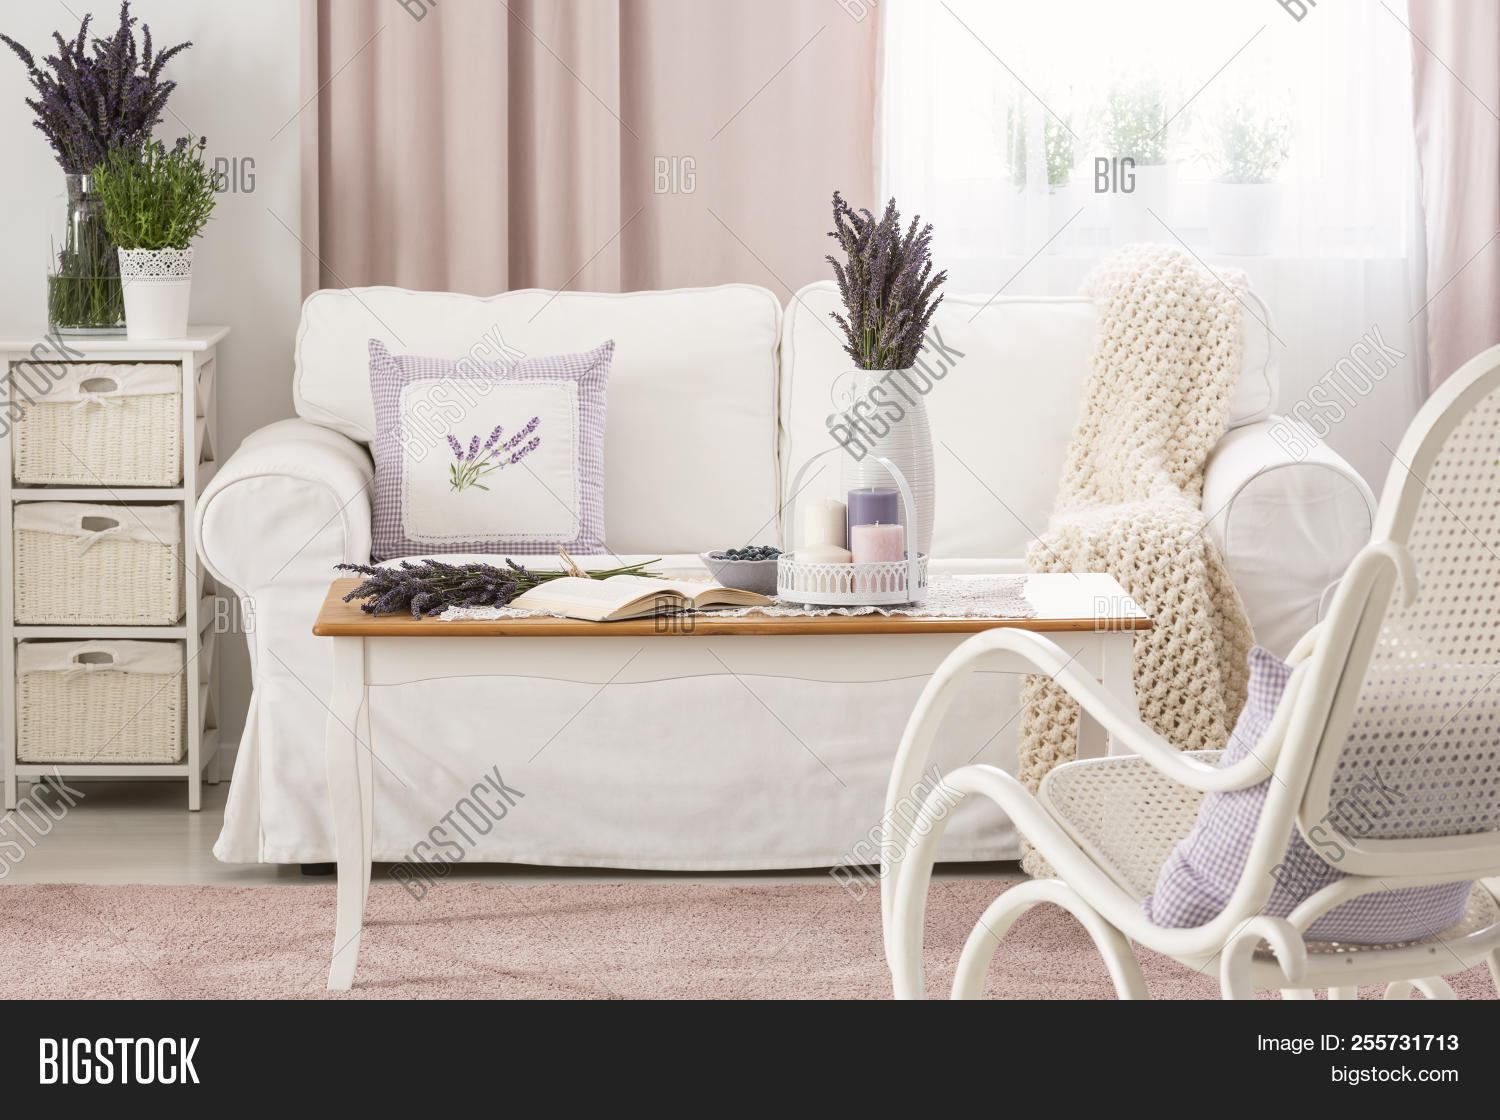 Surprising Wooden Coffee Table Image Photo Free Trial Bigstock Download Free Architecture Designs Pushbritishbridgeorg